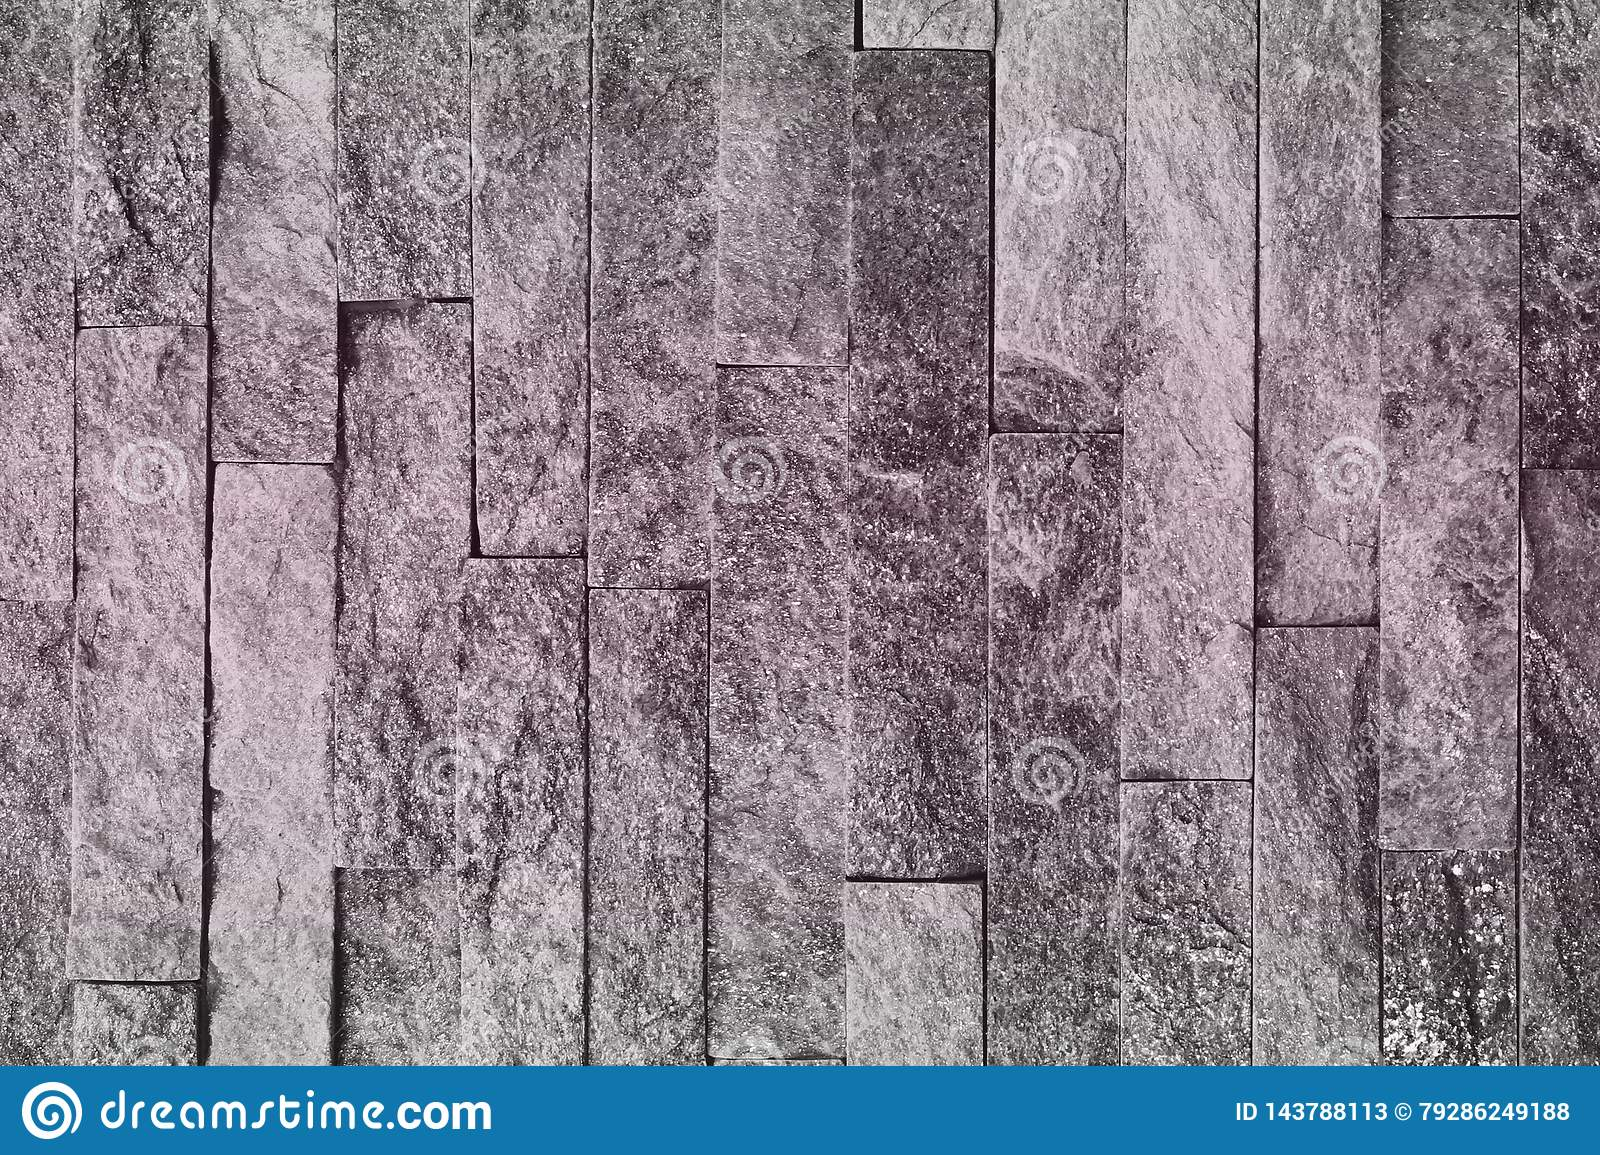 Abstract vintage red natural quartzite stone bricks texture for design purposes